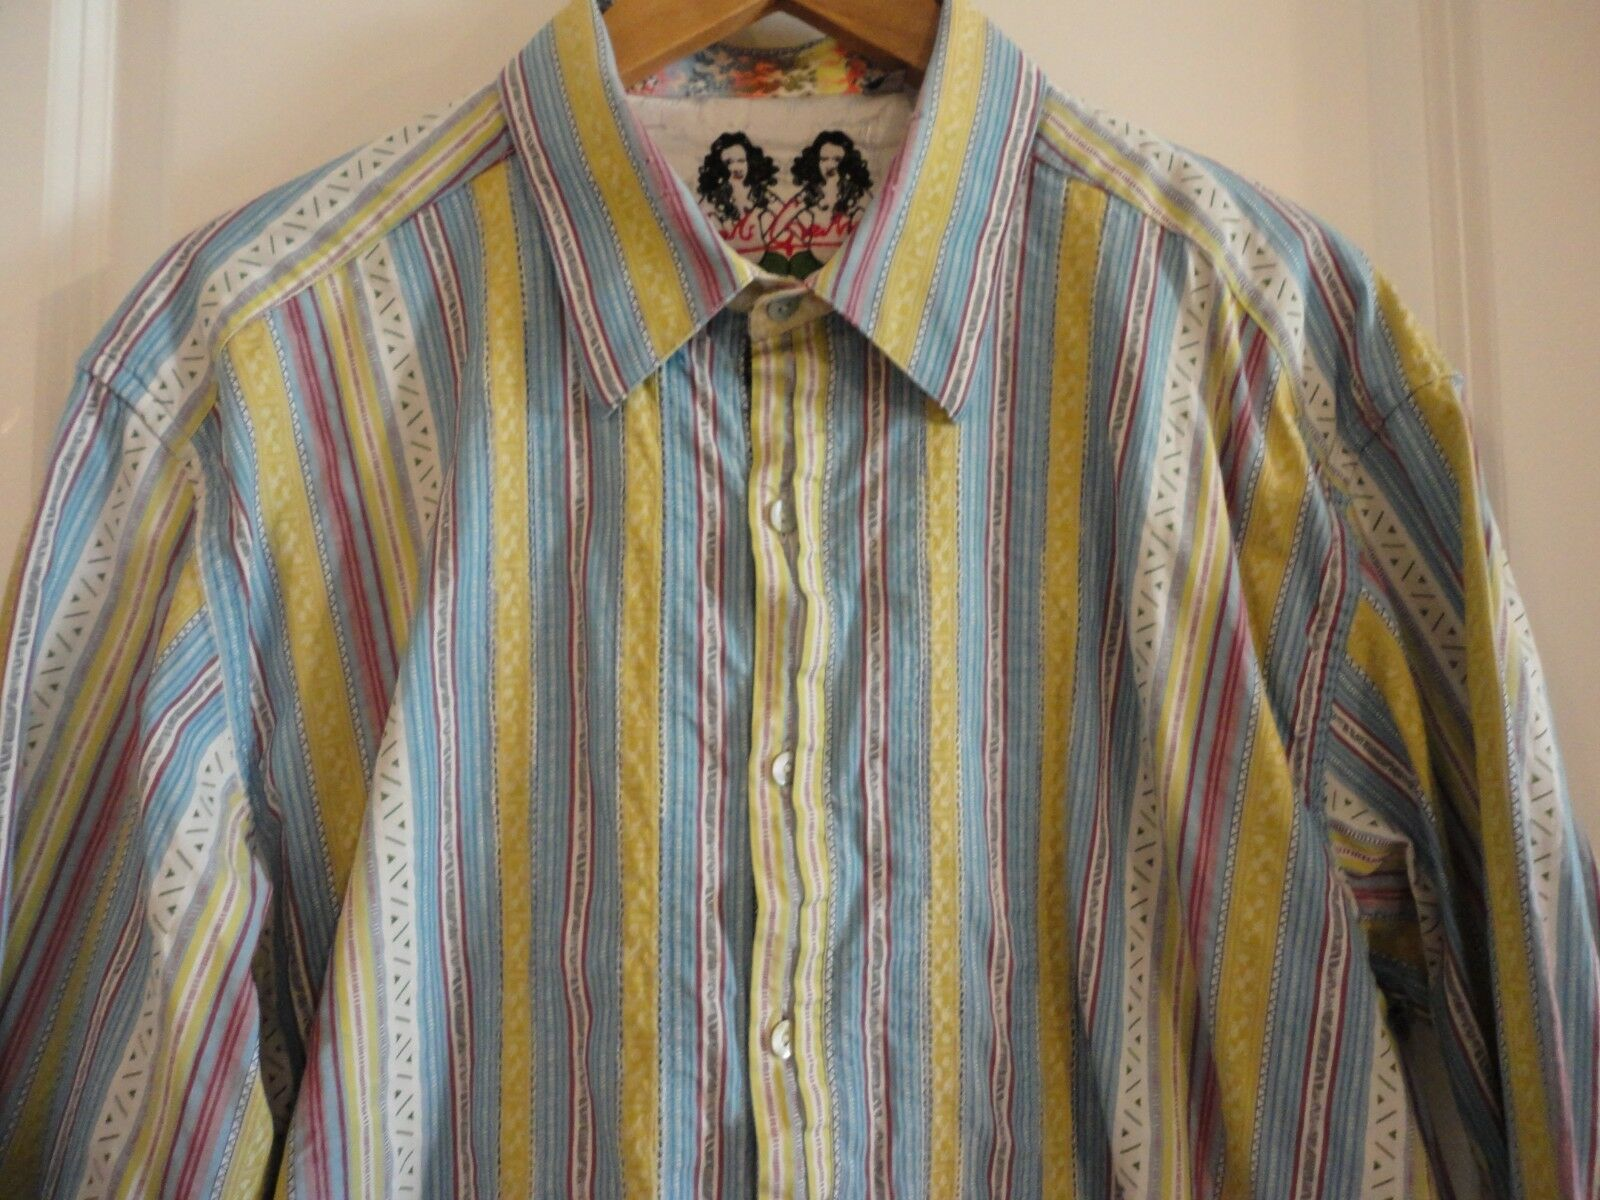 ROBERT GRAHAM Mermaid Label Multi colord Ribbon Patchwork Long Sleeve Shirt XL